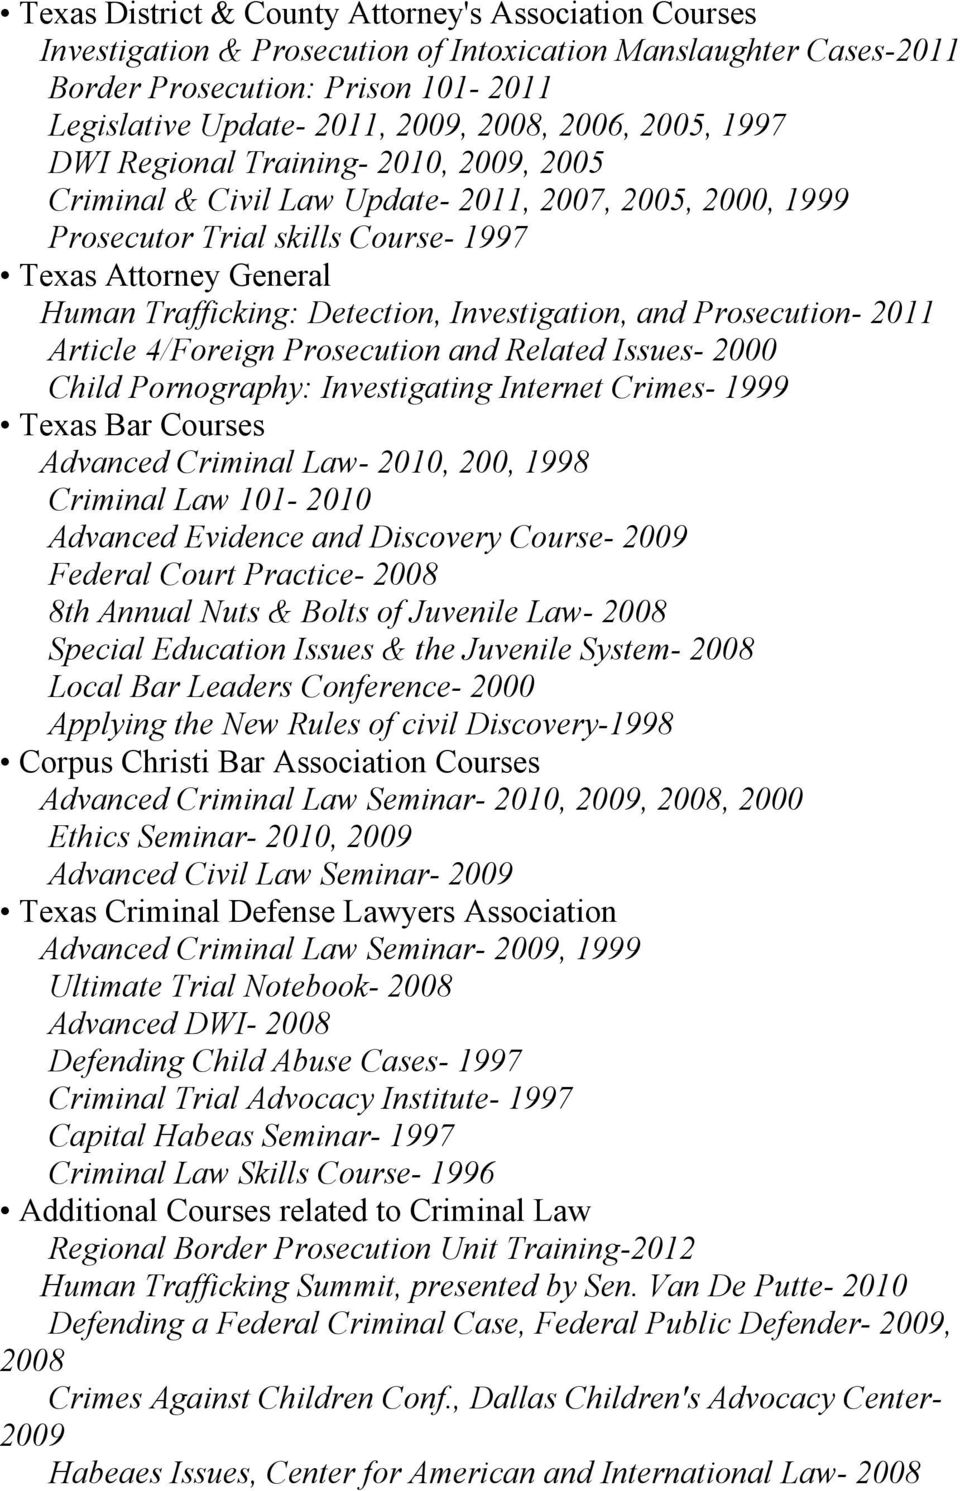 Detection, Investigation, and Prosecution- 2011 Article 4/Foreign Prosecution and Related Issues- 2000 Child Pornography: Investigating Internet Crimes- 1999 Texas Bar Courses Advanced Criminal Law-